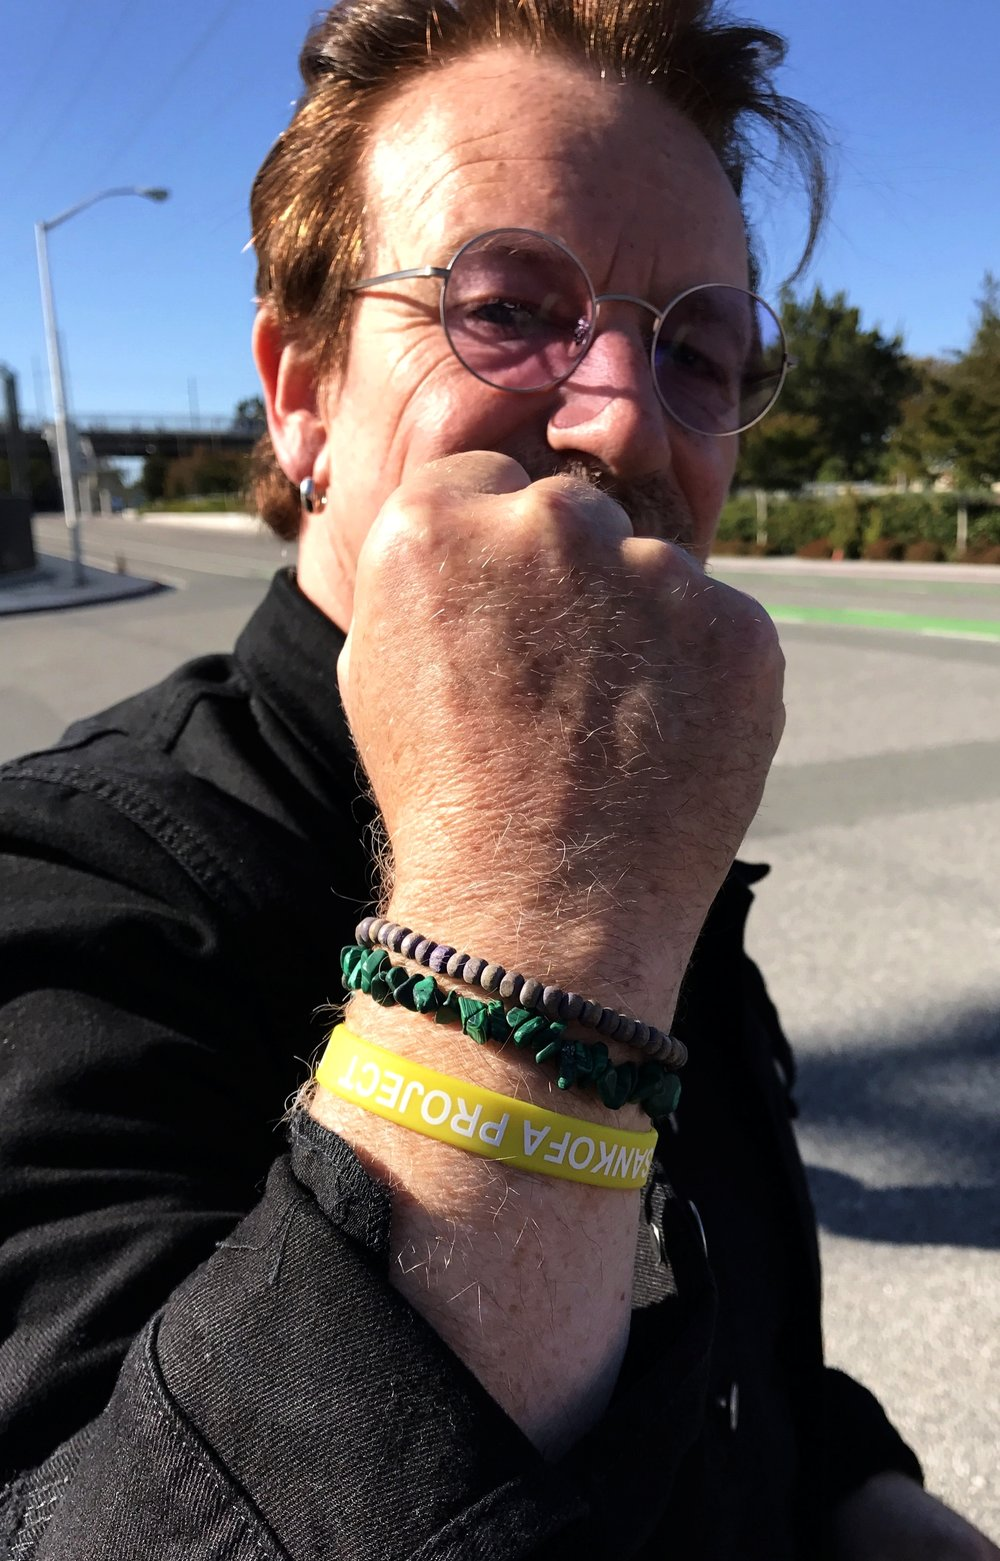 """Bono sporting our bracelets during the Joshua Tree Tour, 2017.At Second Chance Africa, we find resonance in the message of 'One' which urges us to recognize our shared humanity, and the need to """"carry each other' through a world embroiled with both suffering and beauty. Thank you Bono, for your enthusiasm and support over the years!"""